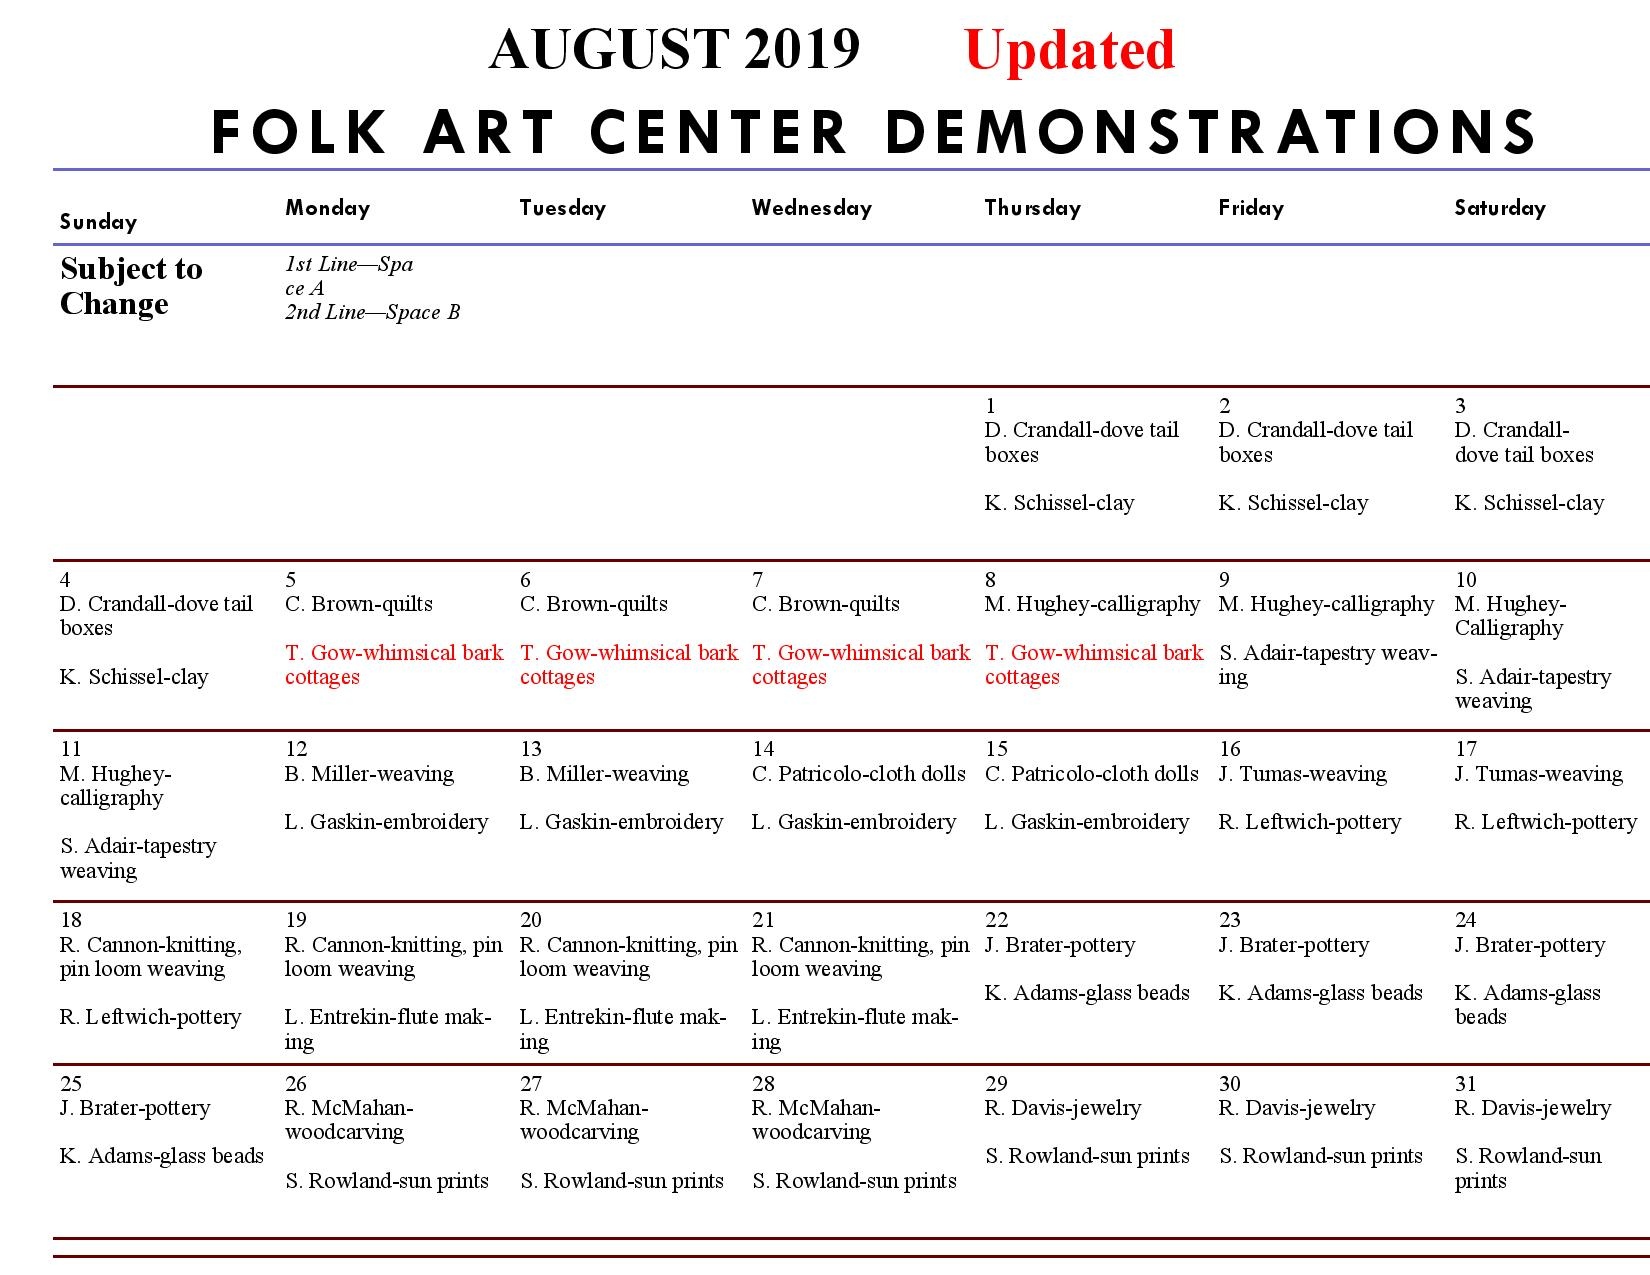 August Daily Craft Demonstration schedule for the folk art center